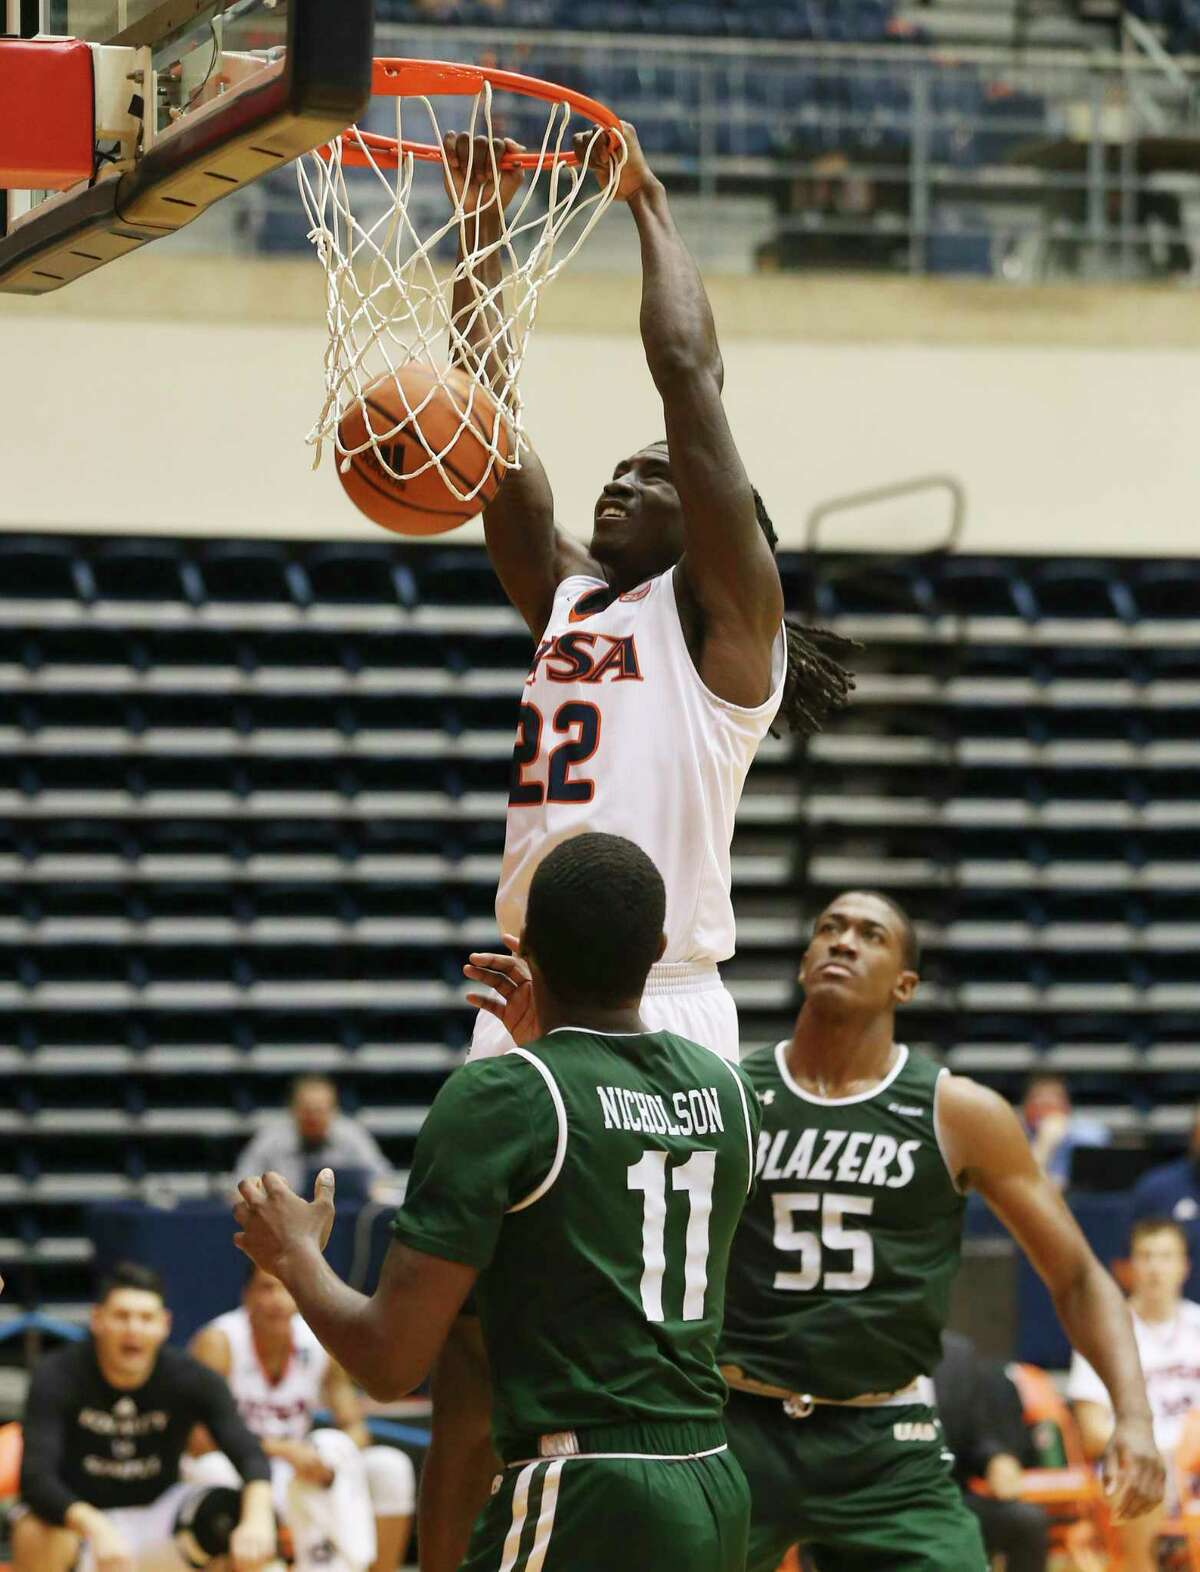 UTSA's Keaton Wallace (22) dunks University of Alabama Birmingham's Kassim Nicholson (11) during men's basketball at the Convocation Center on Friday, Feb. 26, 2021. UTSA goes down, 57-64, to UAB and will play again on Saturday.